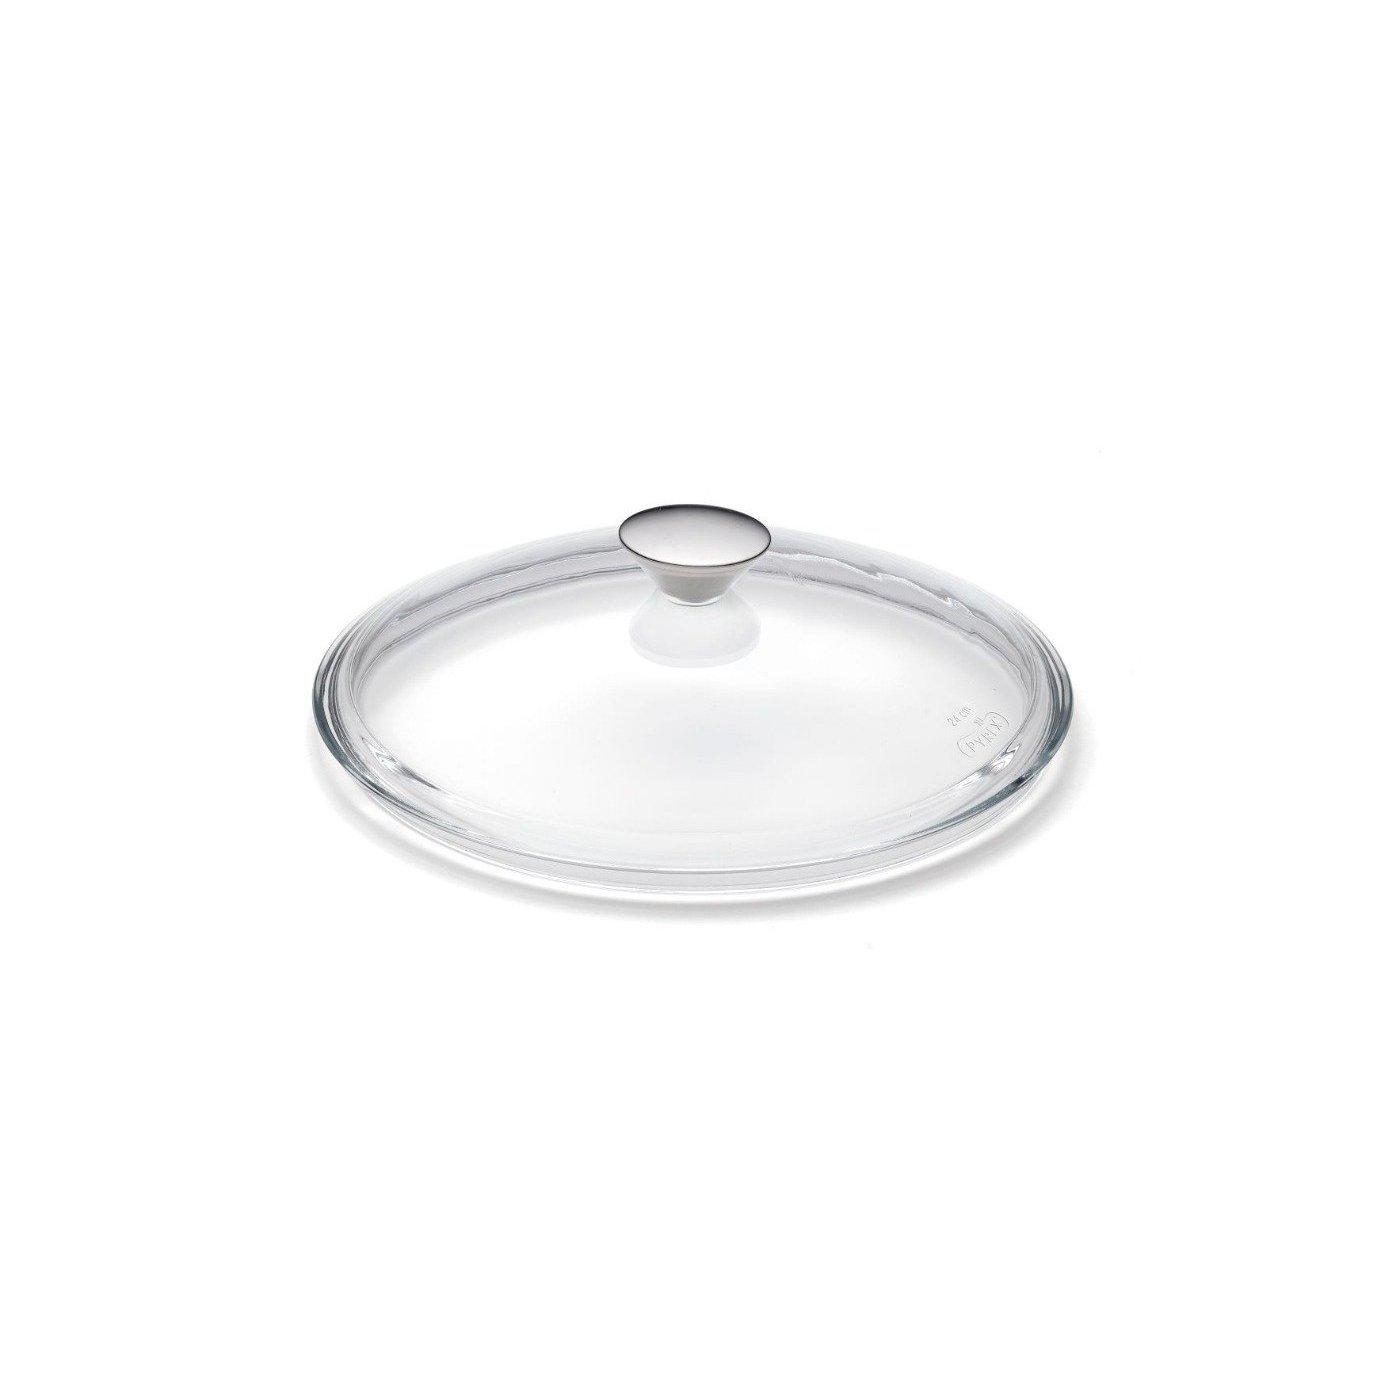 Giannini Vegetalia Evolution Glass Lid 28 cm USA